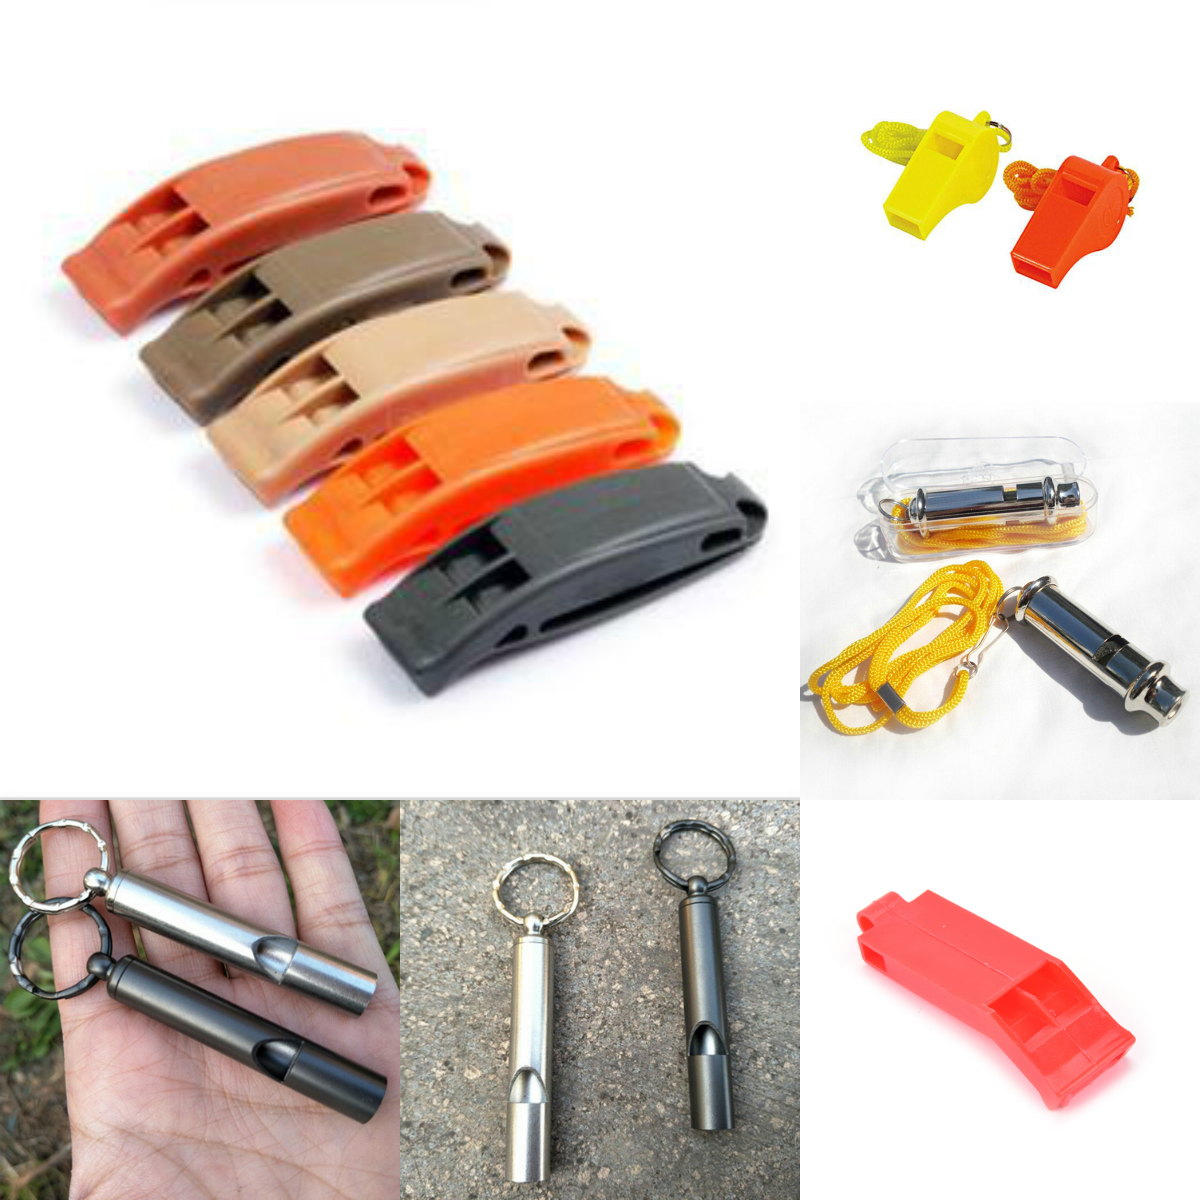 Soccer Football Sports Whistle Steel Military Whistles Safety Portable Outdoor Survival Rescue Emergency Plastic Whistle